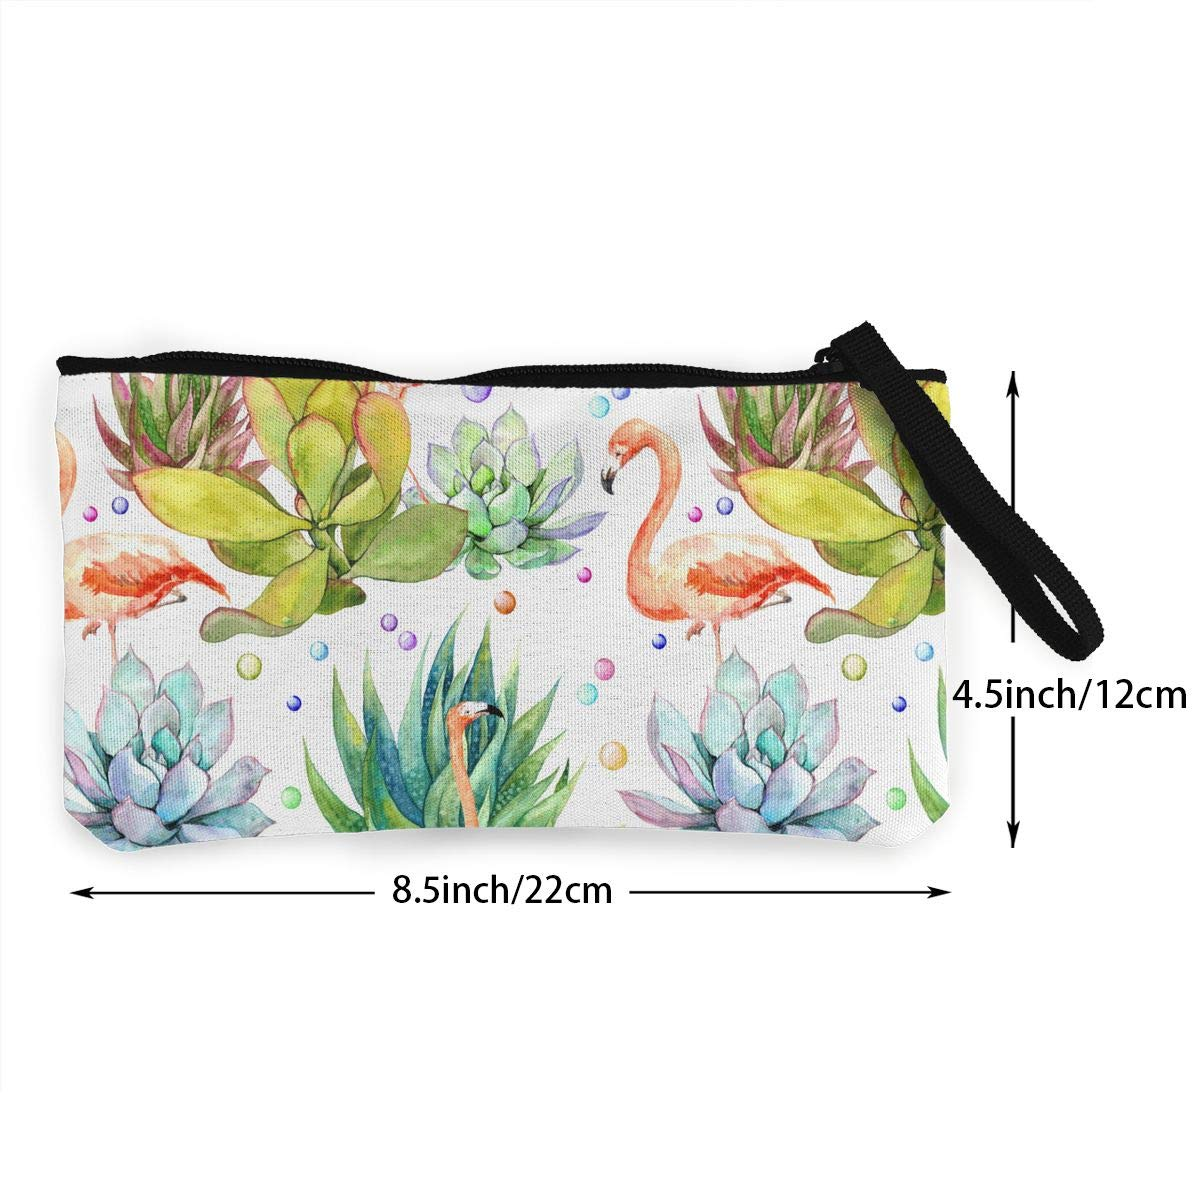 Zipper Small Purse Wallets Girls Canvas Coin Case Cellphone Clutch Purse With Wrist Strap Flamingo In Succulents Pattern